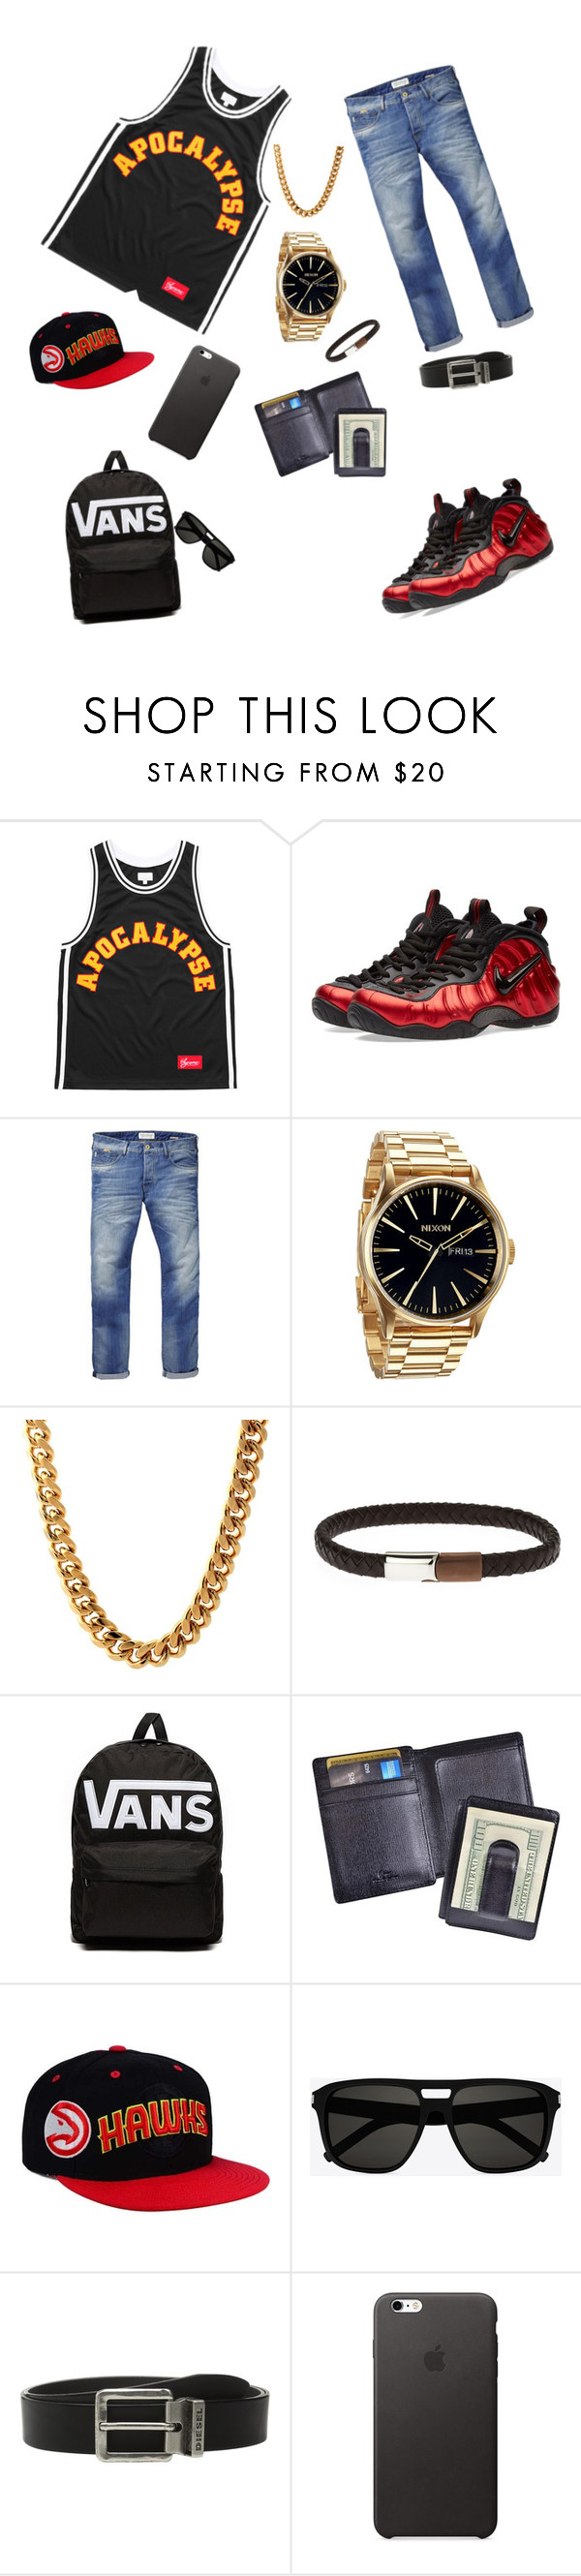 """""""Street wear fly"""" by yasin-rhodes ❤ liked on Polyvore featuring NIKE, Scotch & Soda, Nixon, King Ice, Vans, Royce Leather, adidas, Yves Saint Laurent, Diesel and men's fashion"""